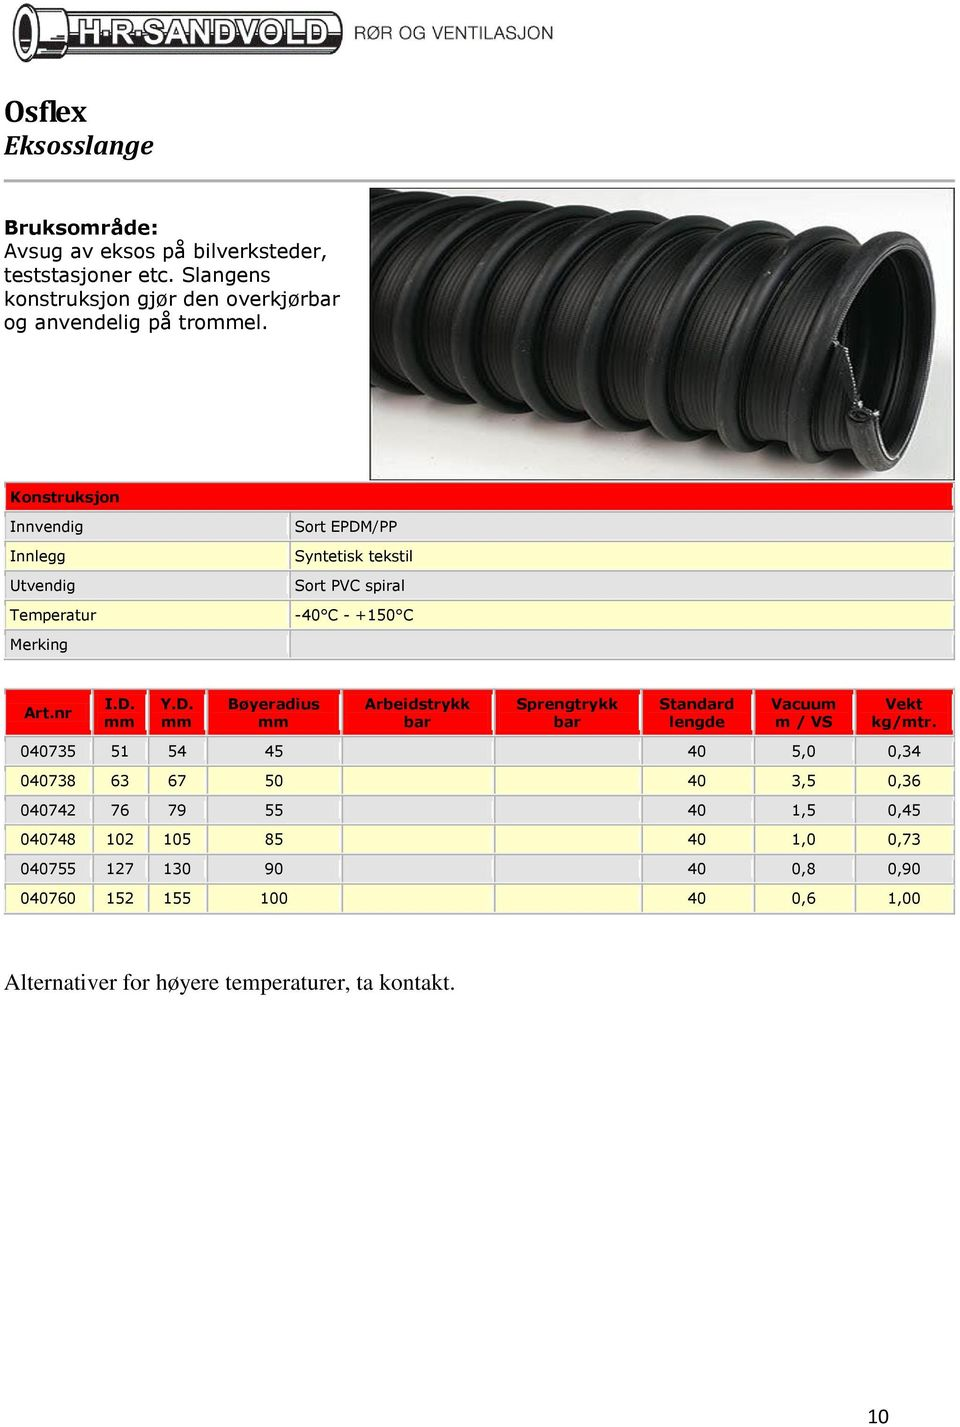 Innlegg Sort EPDM/PP Syntetisk tekstil Sort PVC spiral -40 C - +150 C m / VS 040735 51 54 45 40 5,0 0,34